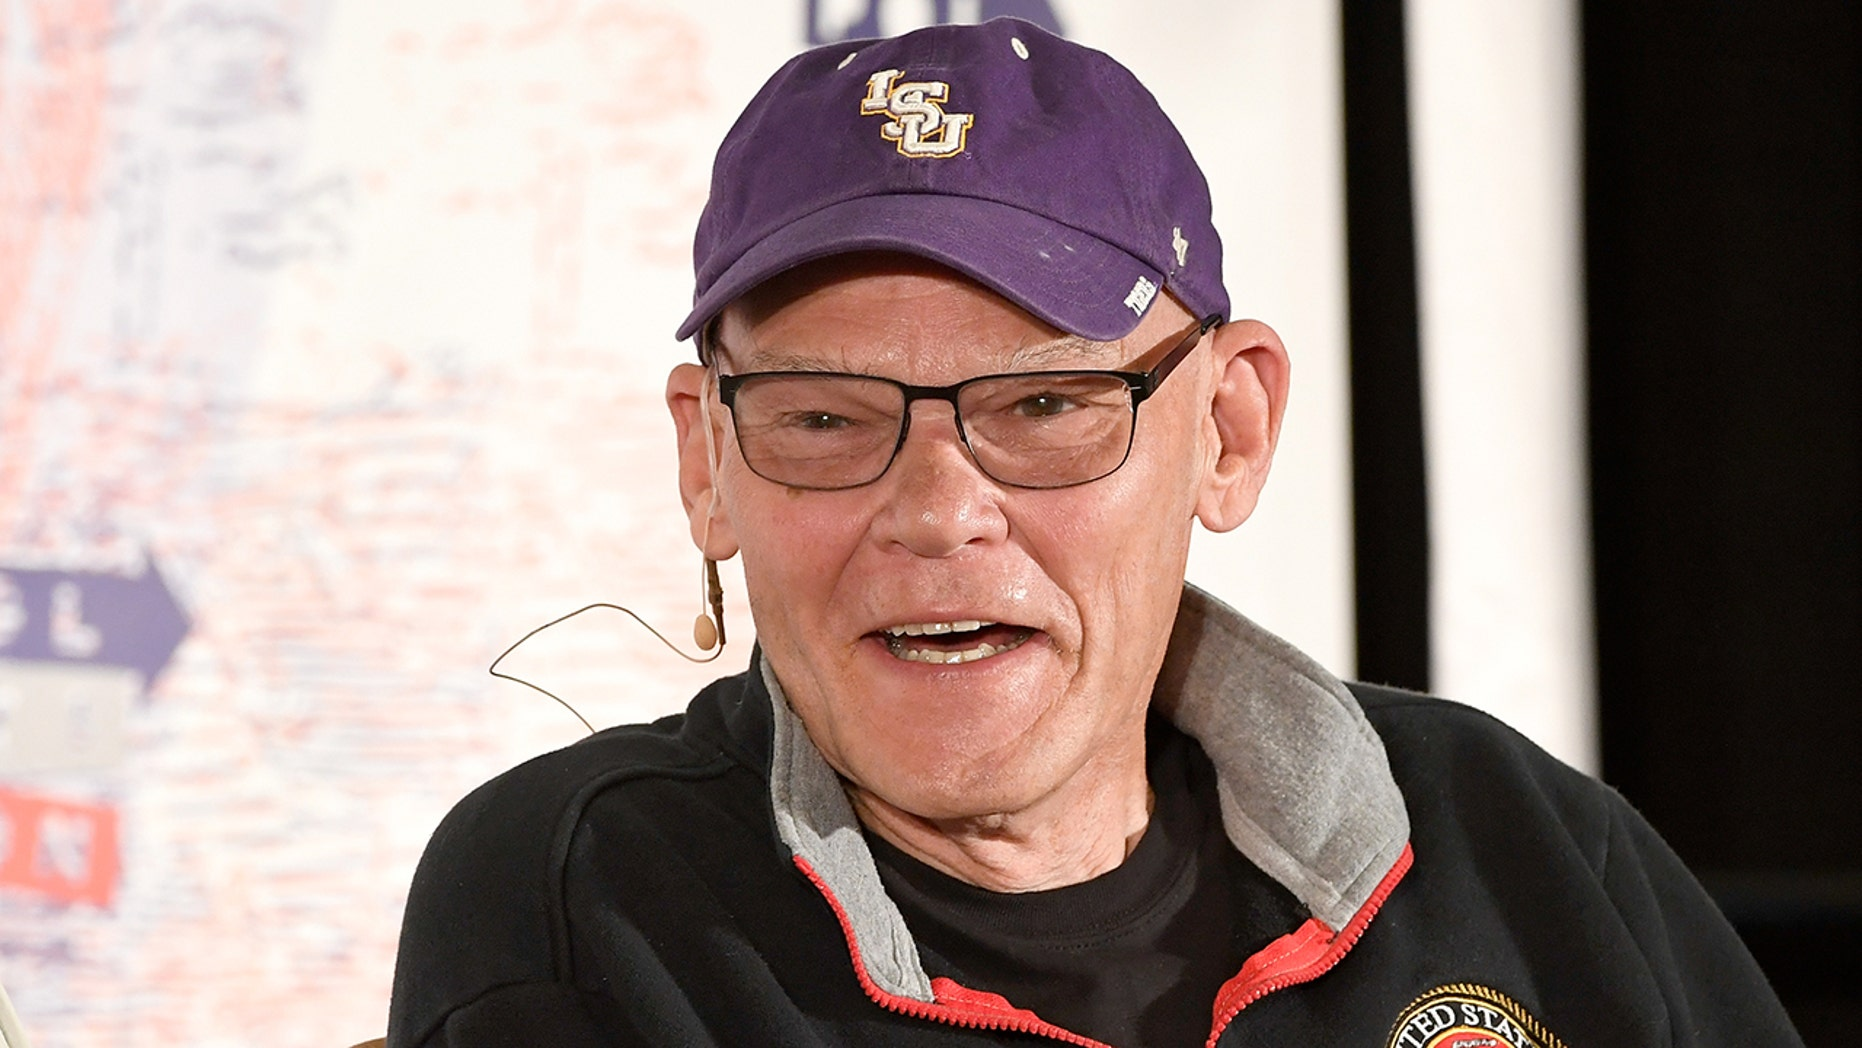 James Carville, former lead strategist for former President Clinon, slammed ESPN on Saturday for a network's reparation about his speculation on a SEC.